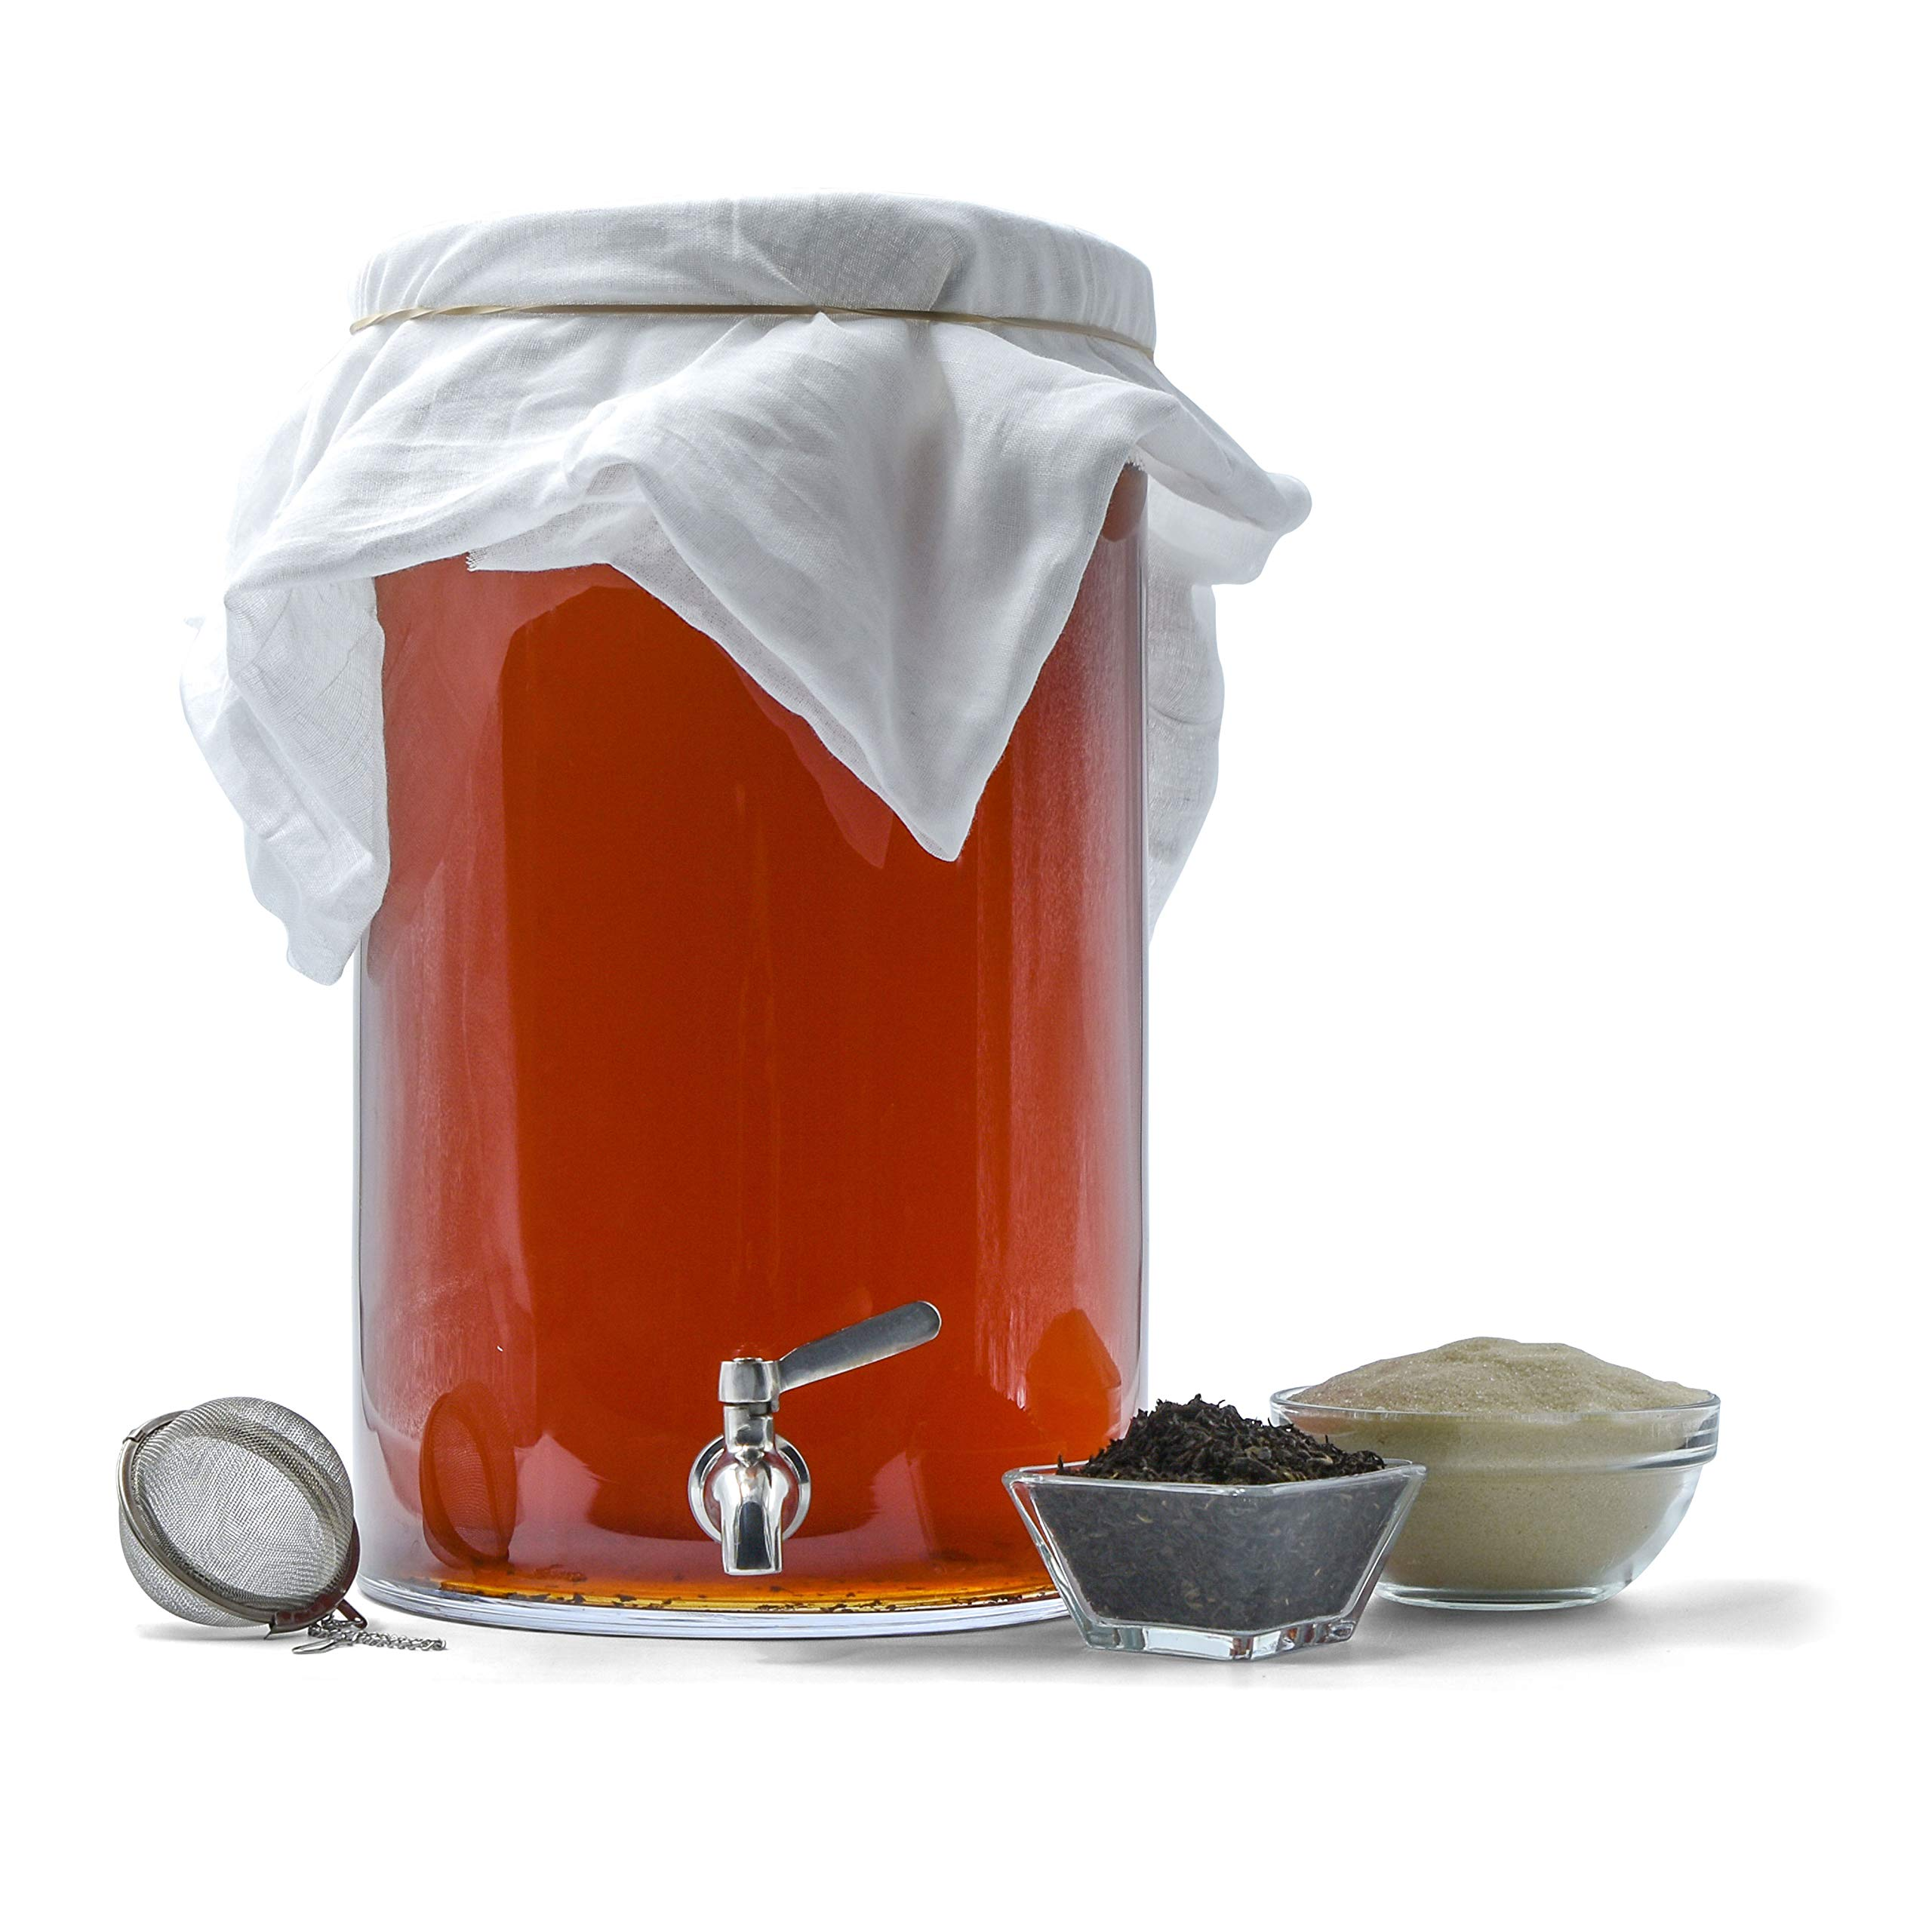 Northern Brewer - Kombucha Brewing Starter Kit With Scoby Included (3 Gallon Glass with Stainless Spigot) by Northern Brewer (Image #5)